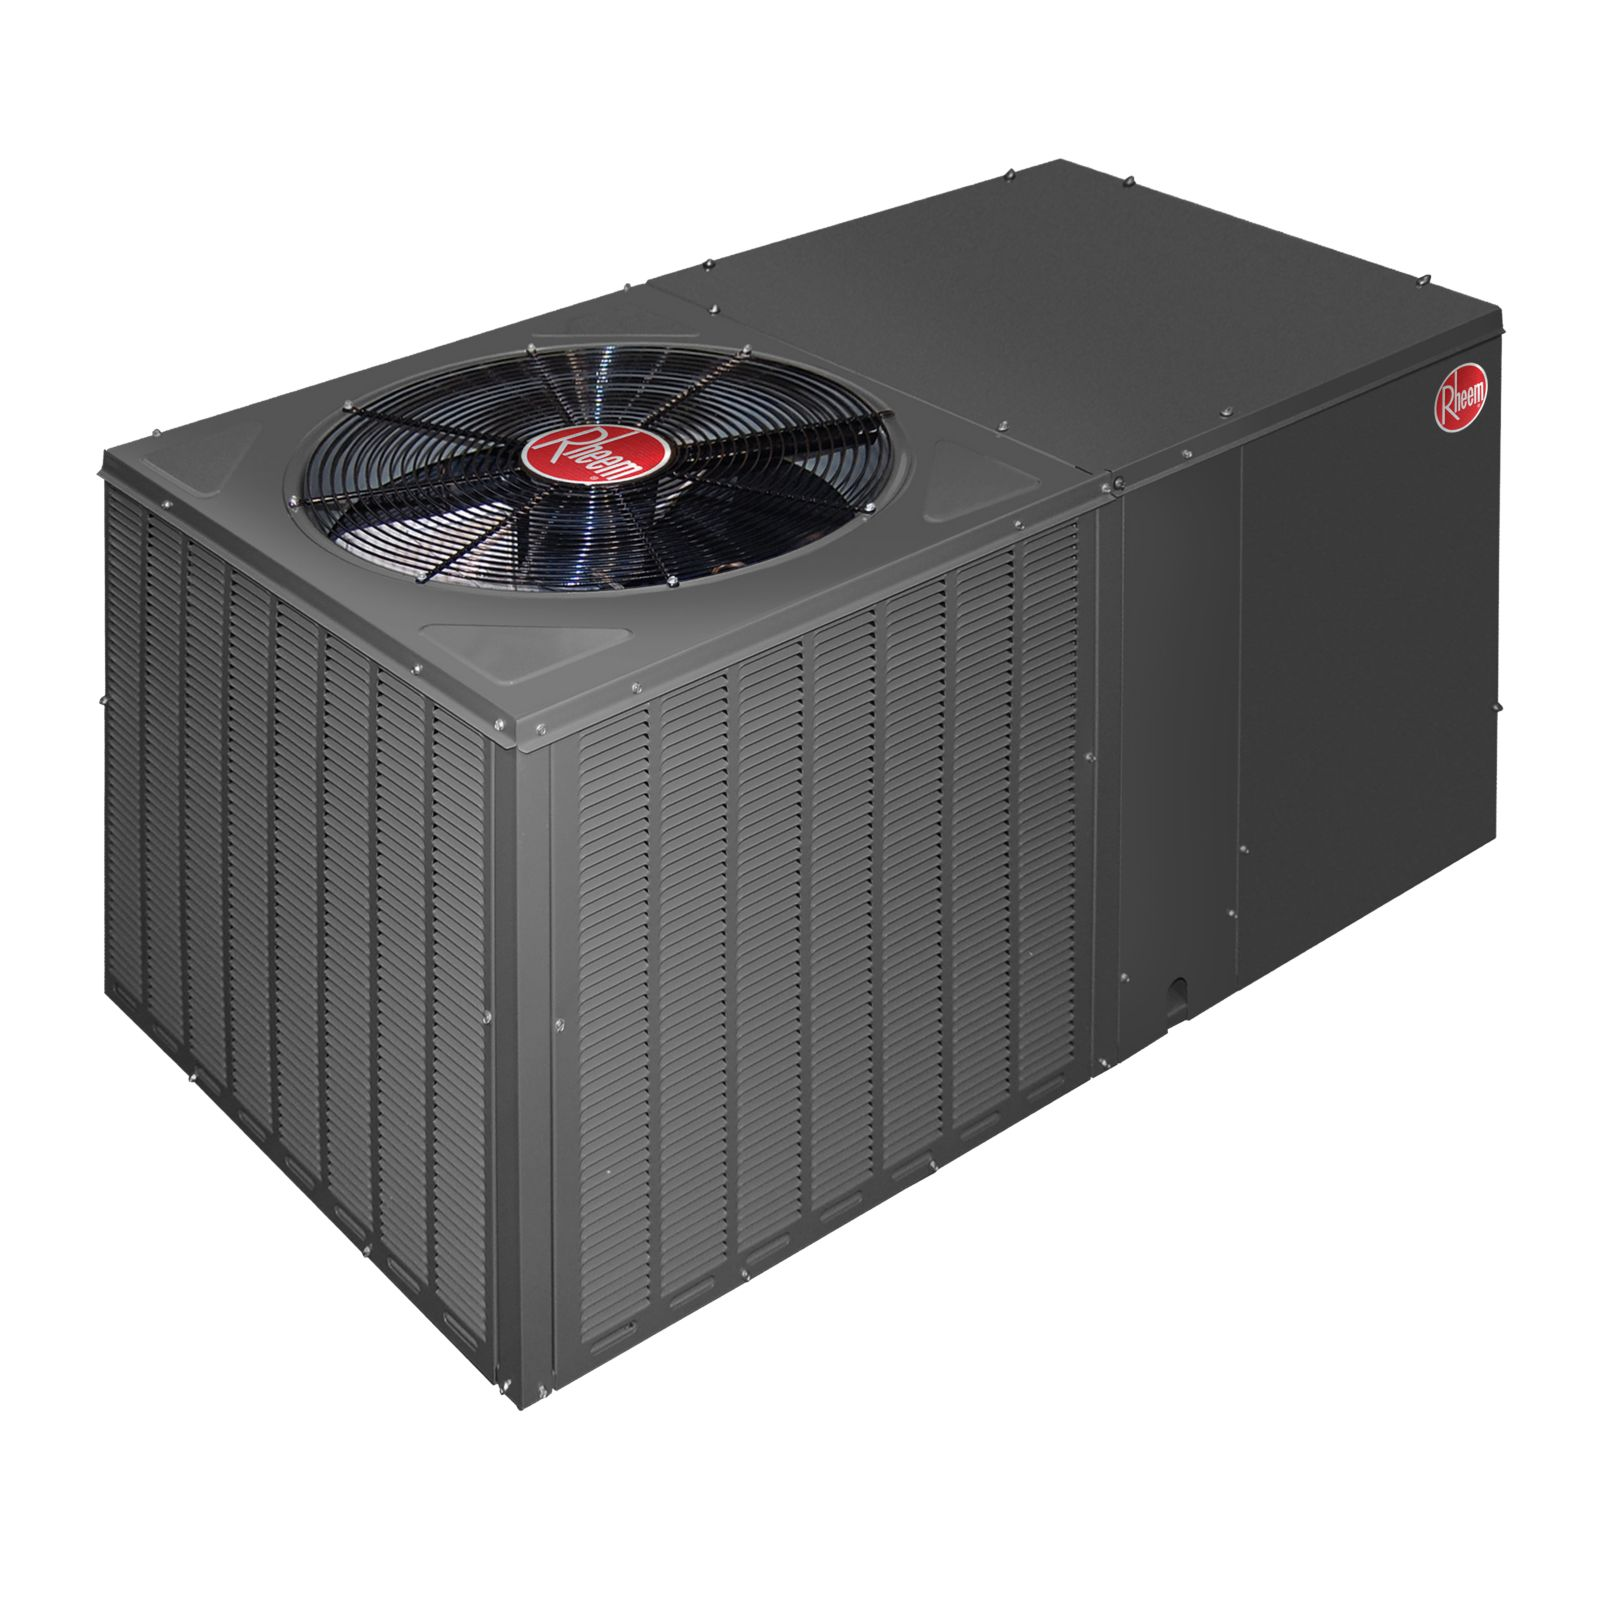 Rheem RQPM-A060JK000AUA - Classic 5 Ton 14 SEER, R-410A, Packaged Heat Pump With Horizontal Discharge, 208-230V, 1 Phase